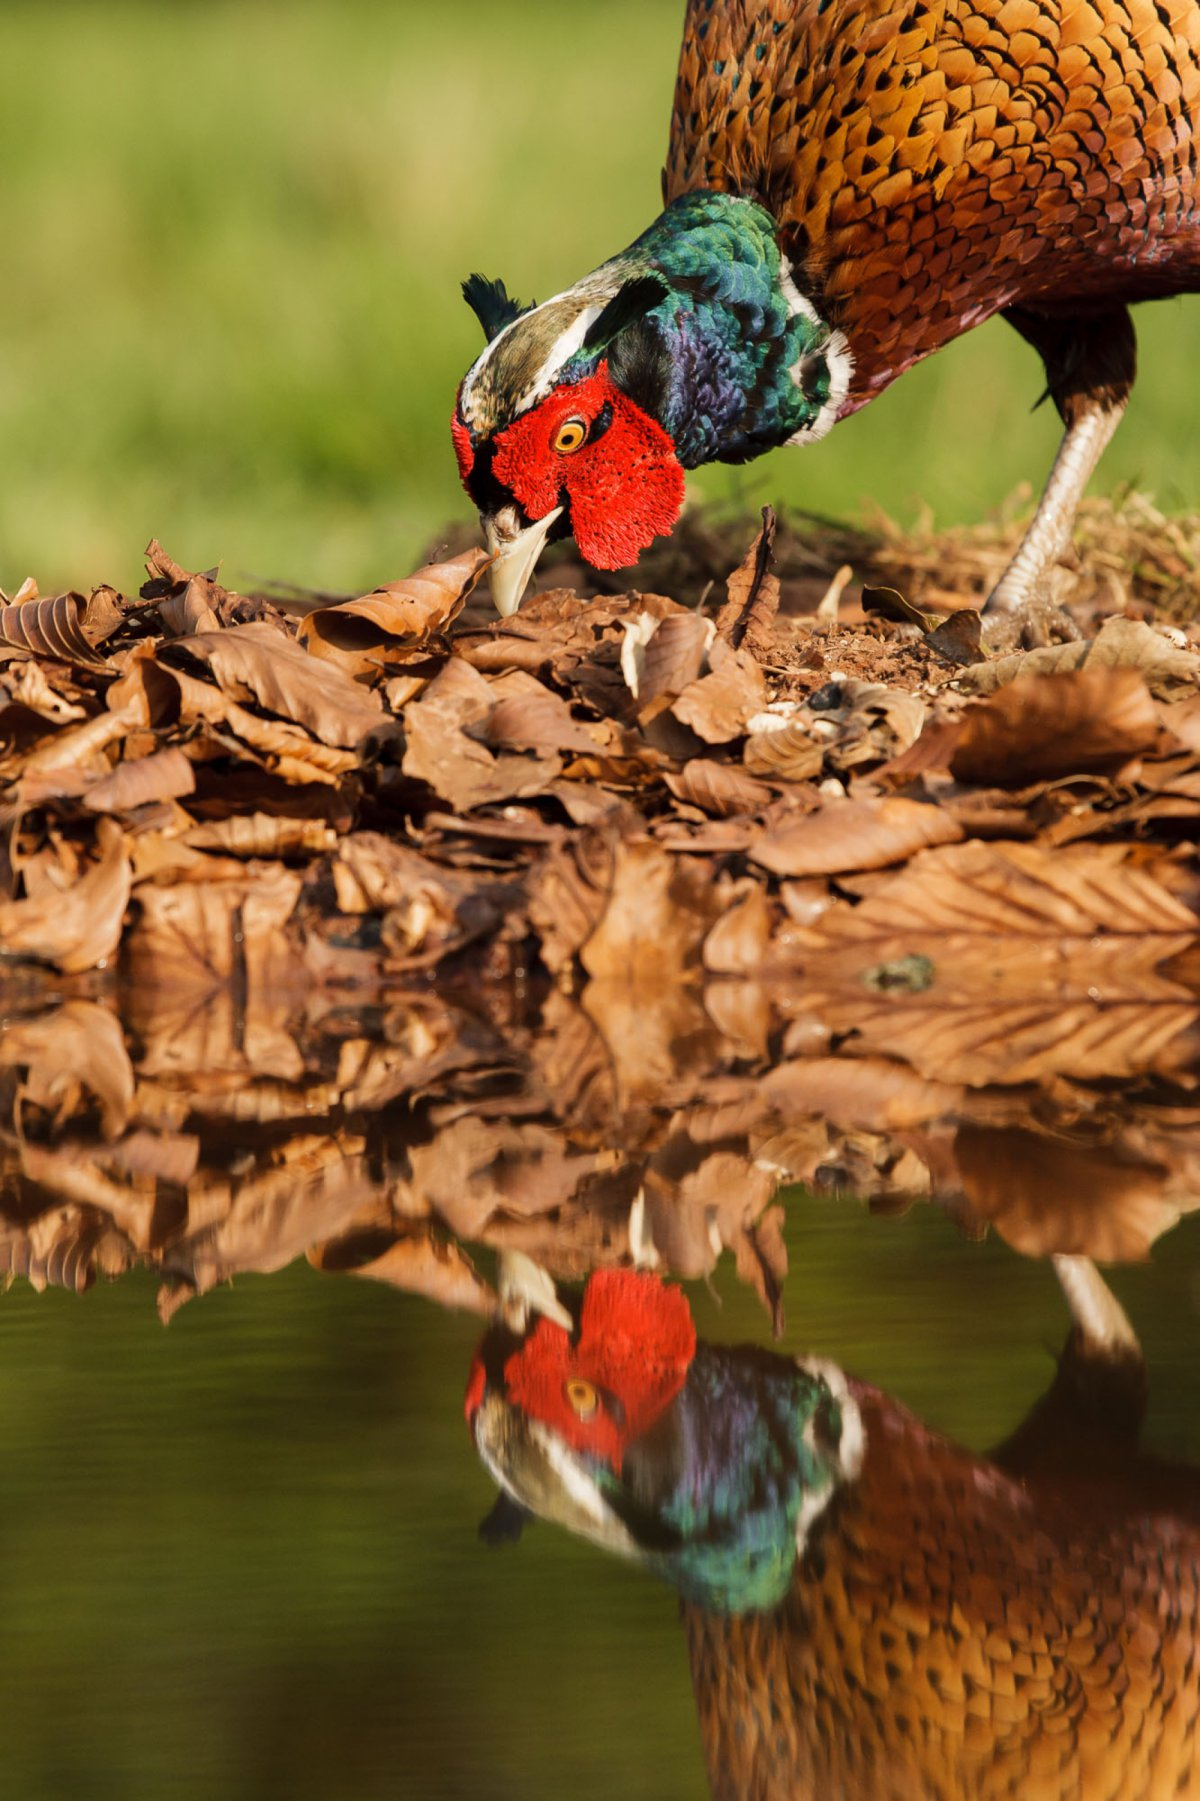 Pheasant looking at reflection in water